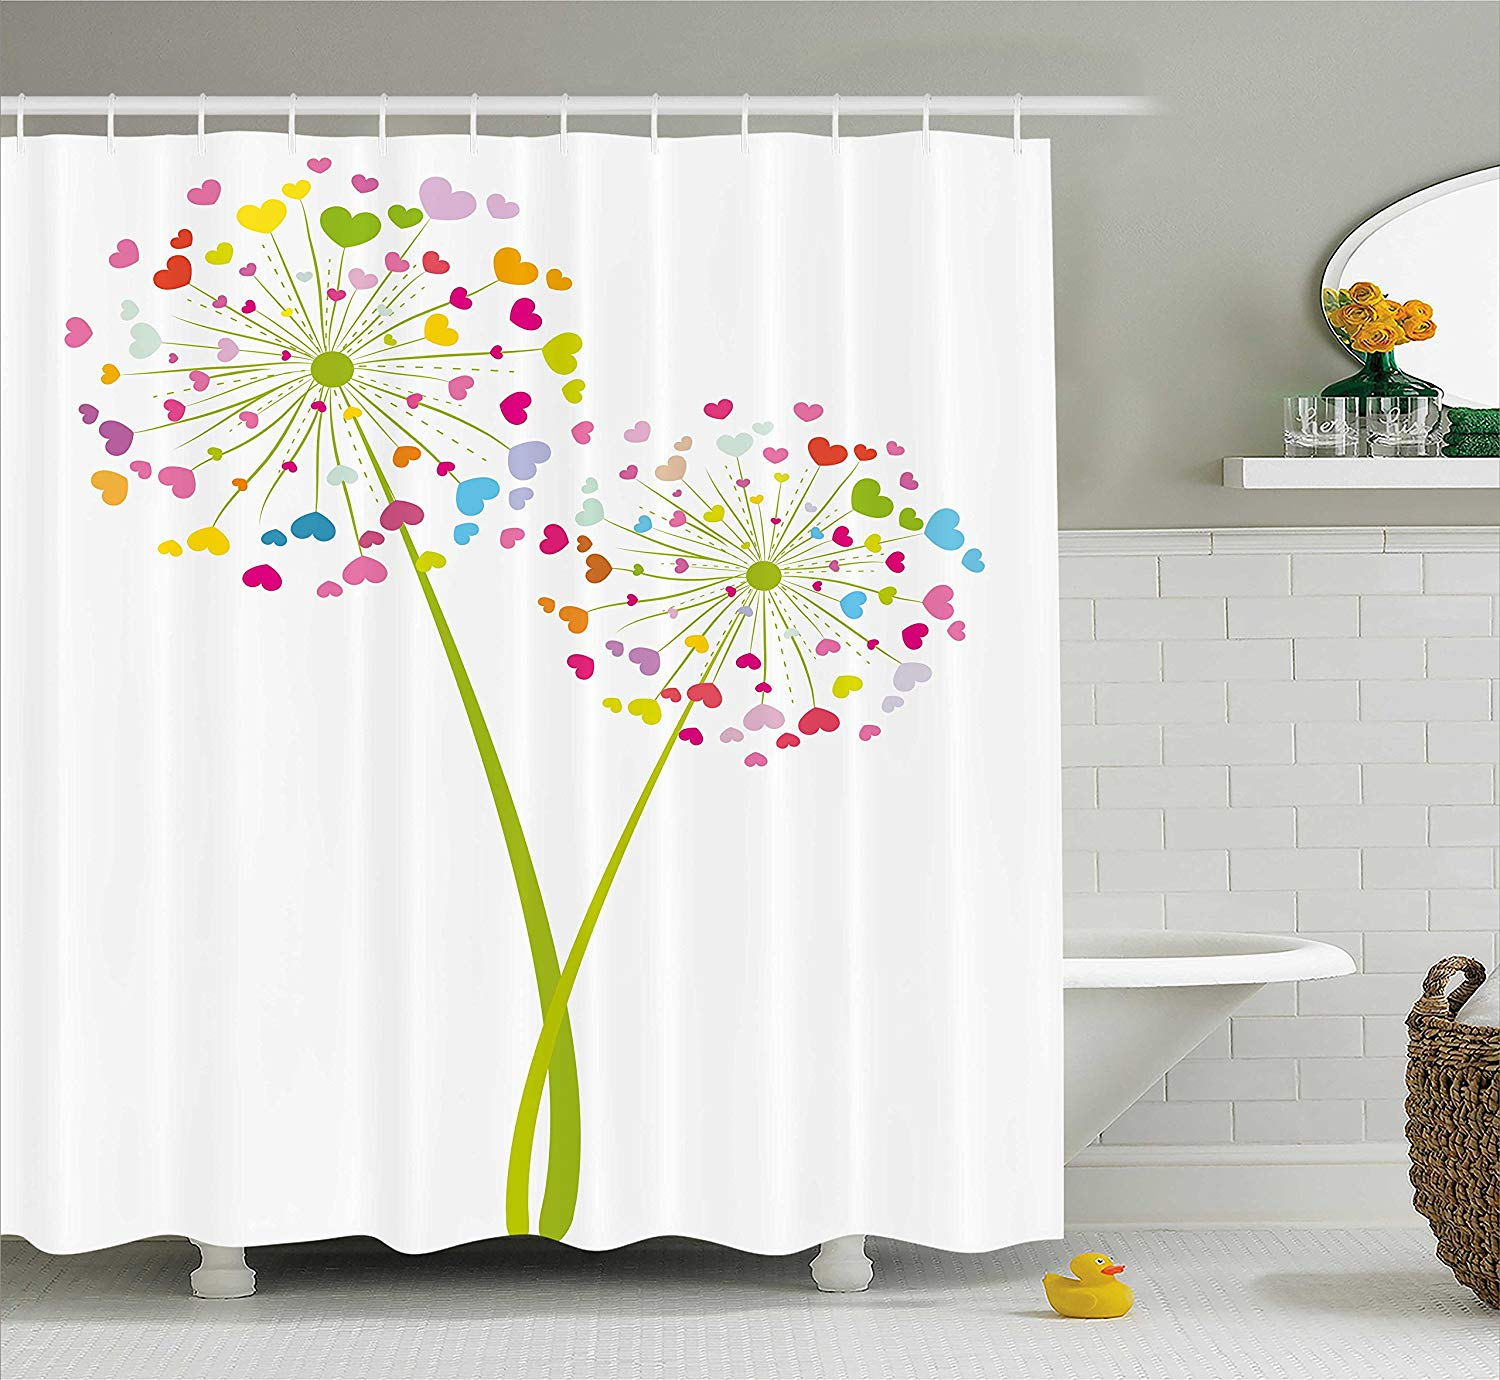 Floral Shower Curtain, Spring Dandelion Flower with Heart Shaped Colorful Petals Romance Love Valentines, Bathroom Decor